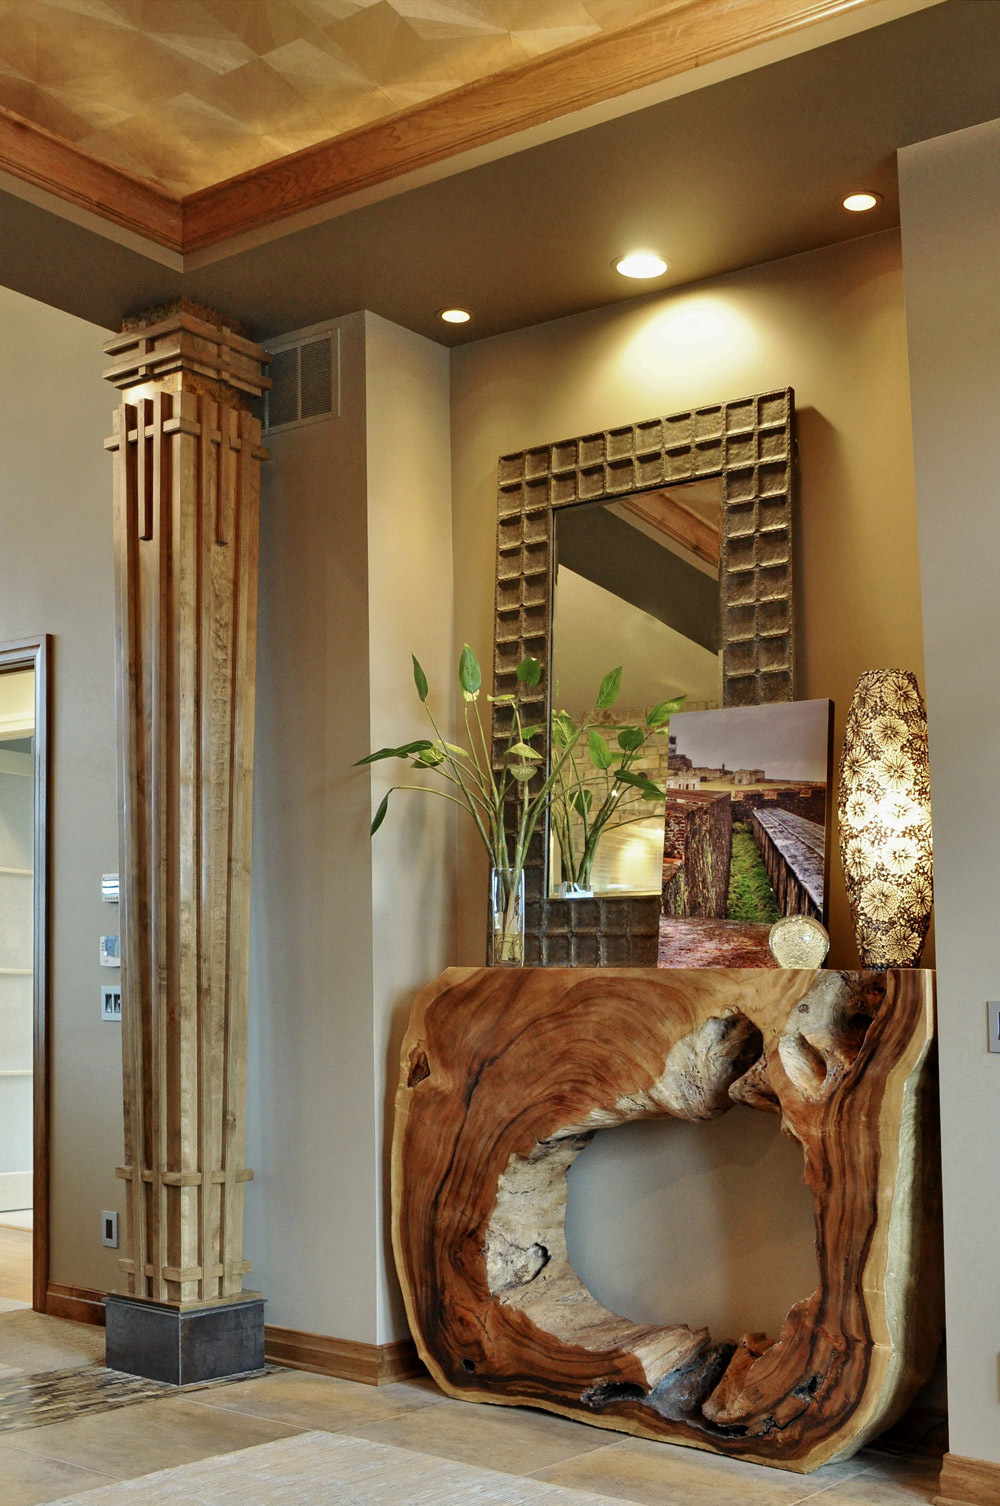 coffey-and-co-residential-interior-design-lincoln-nebraska-thornwood-modern-contemporary-01.jpg